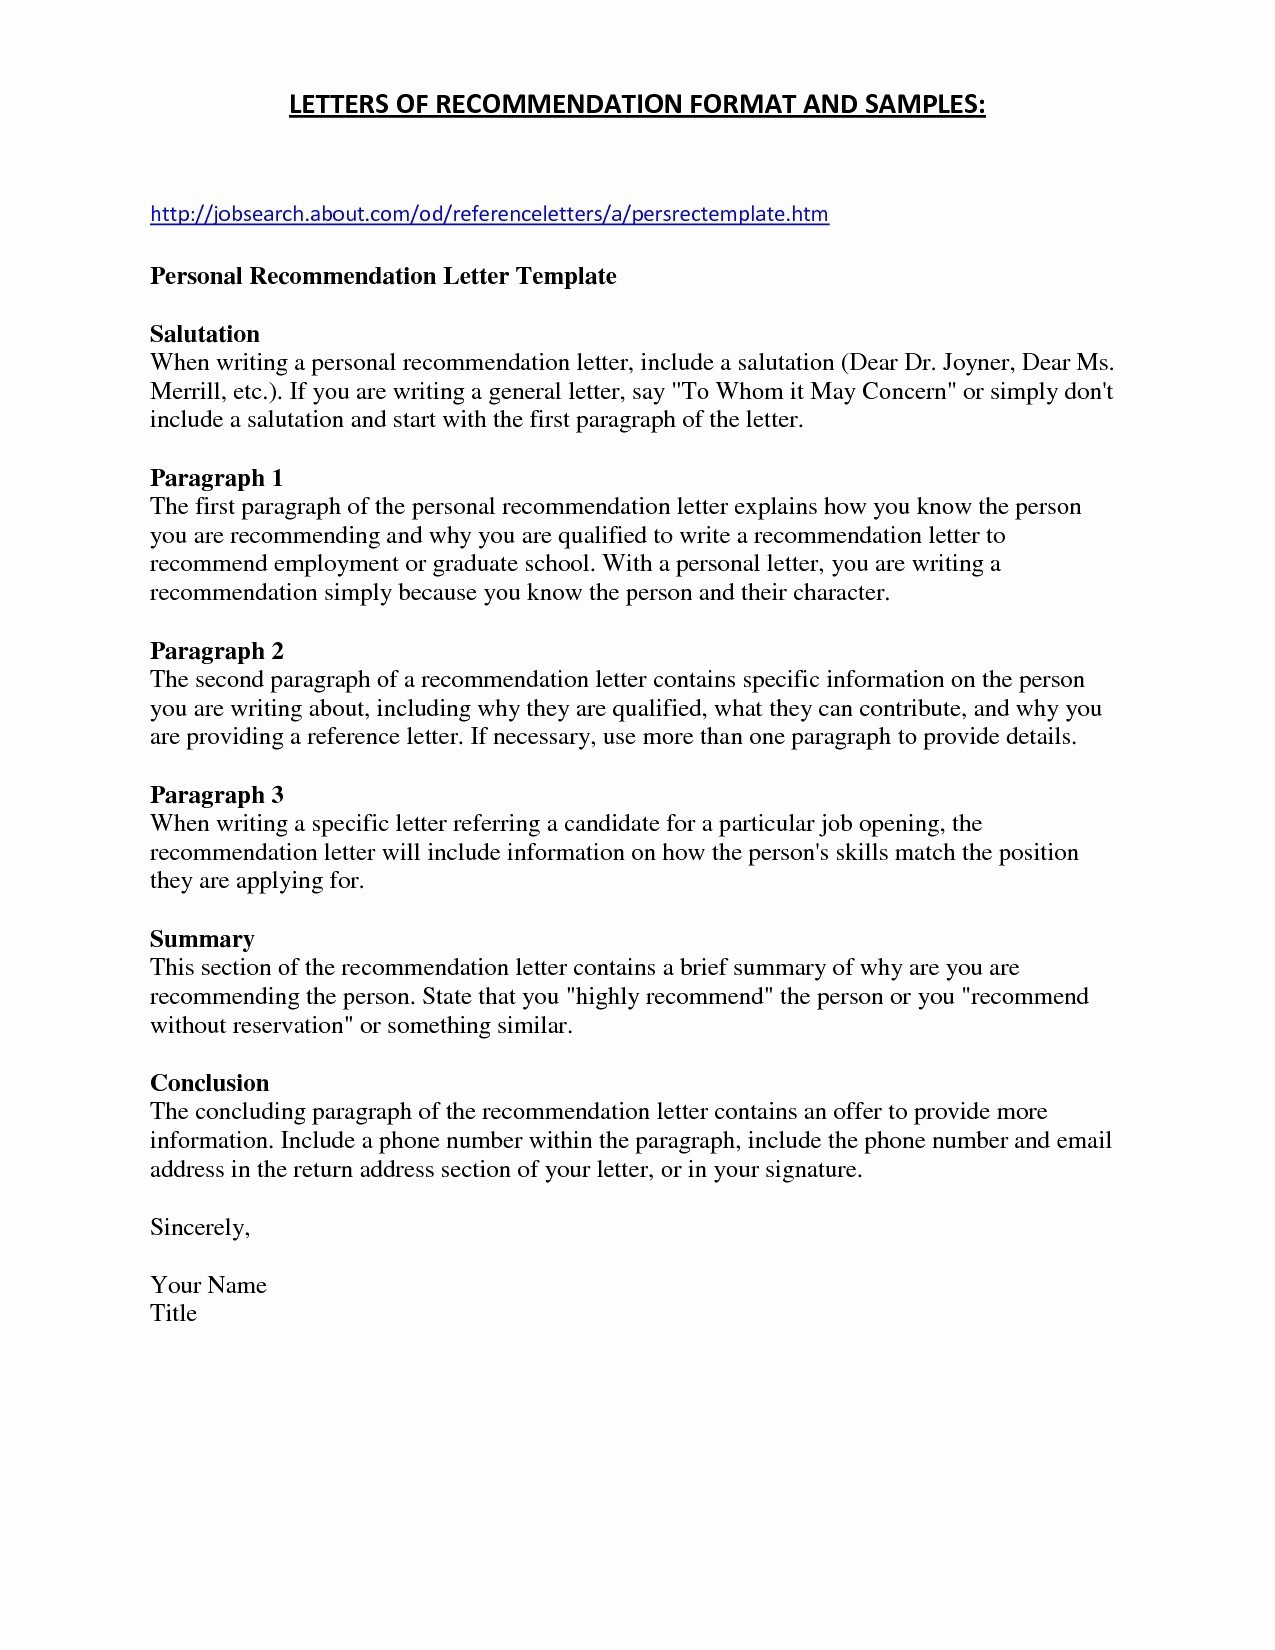 Agile Business Analyst Resume - Functional Business Analyst Resume New It Business Analyst Resume